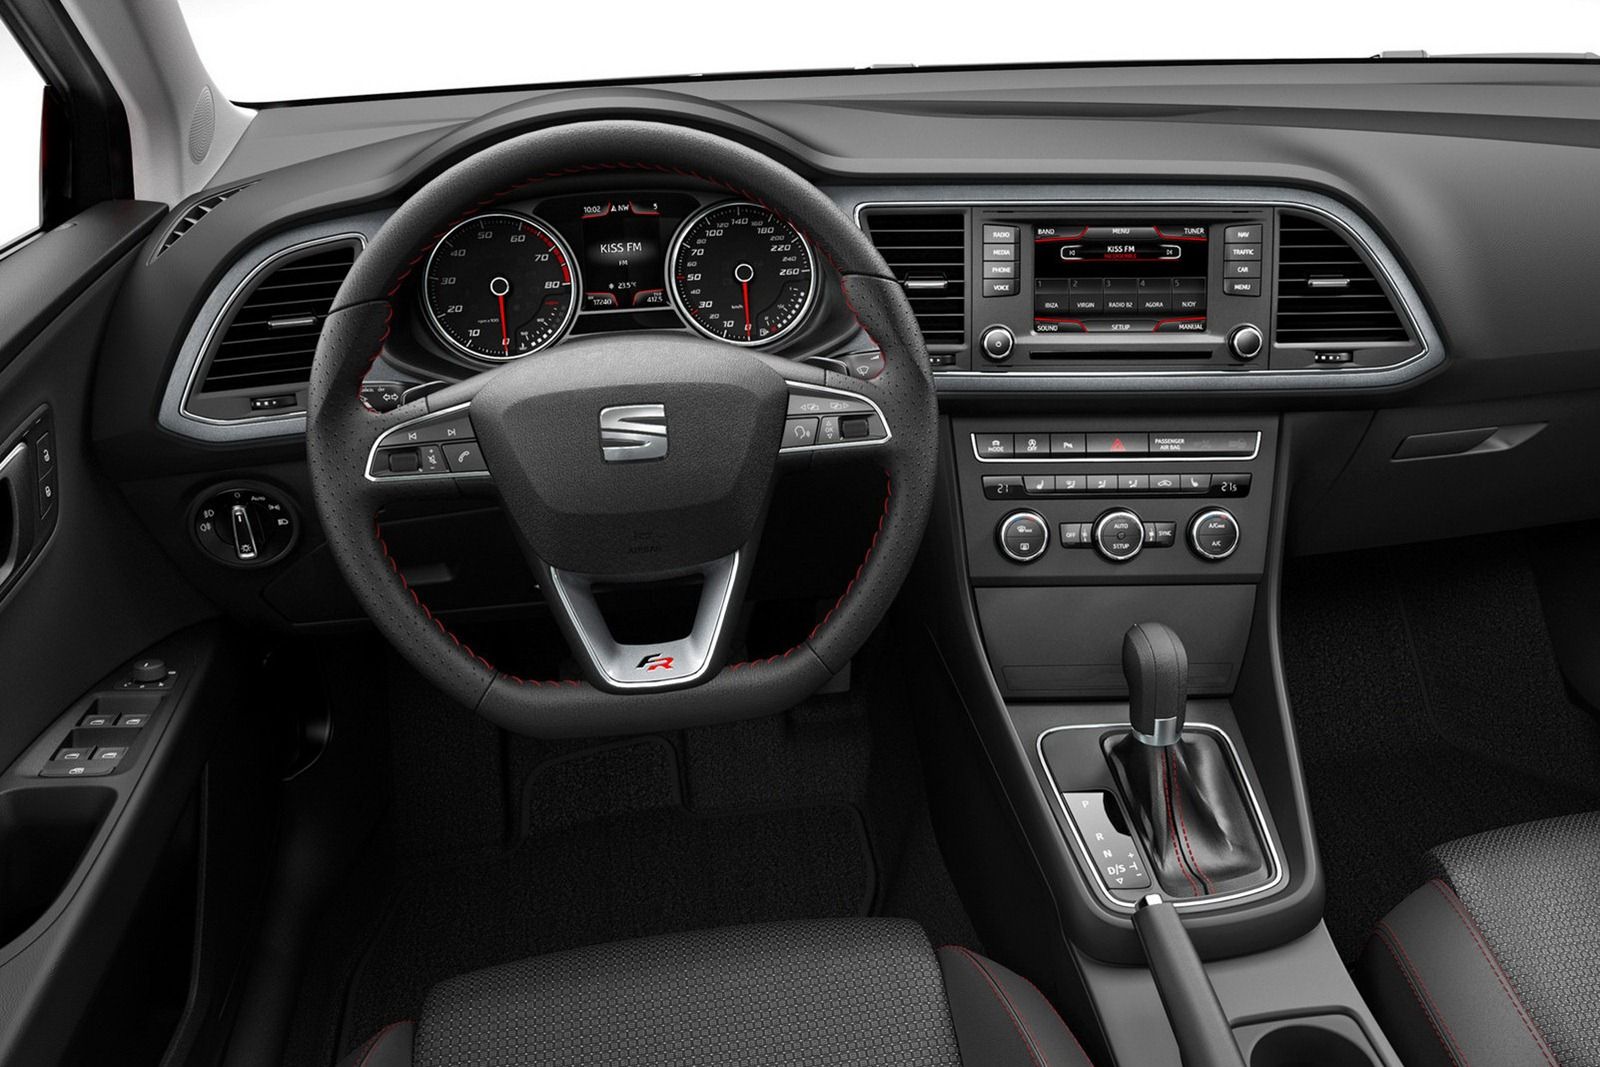 2013 Seat Leon 7 2013 Seat Leon   Majestic Aesthete, Dazzling Color Contrast and Superb Nav System